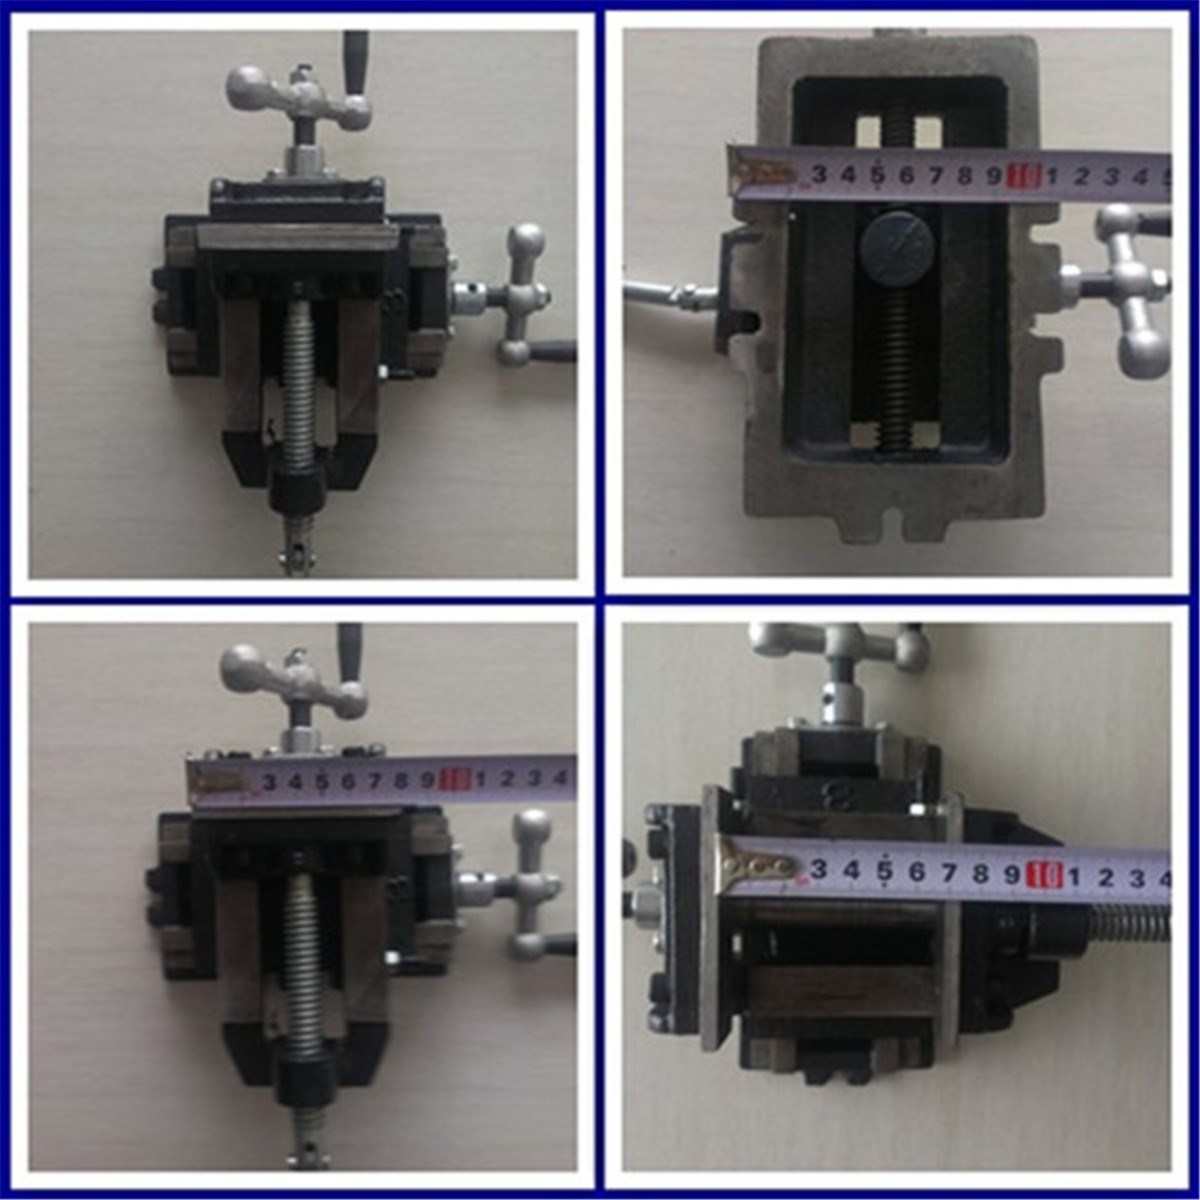 3 Inch 4 inch 5 inch 6 inch 8 inch cross machine for drilling and milling machine vise vise clamp drill cross clamp